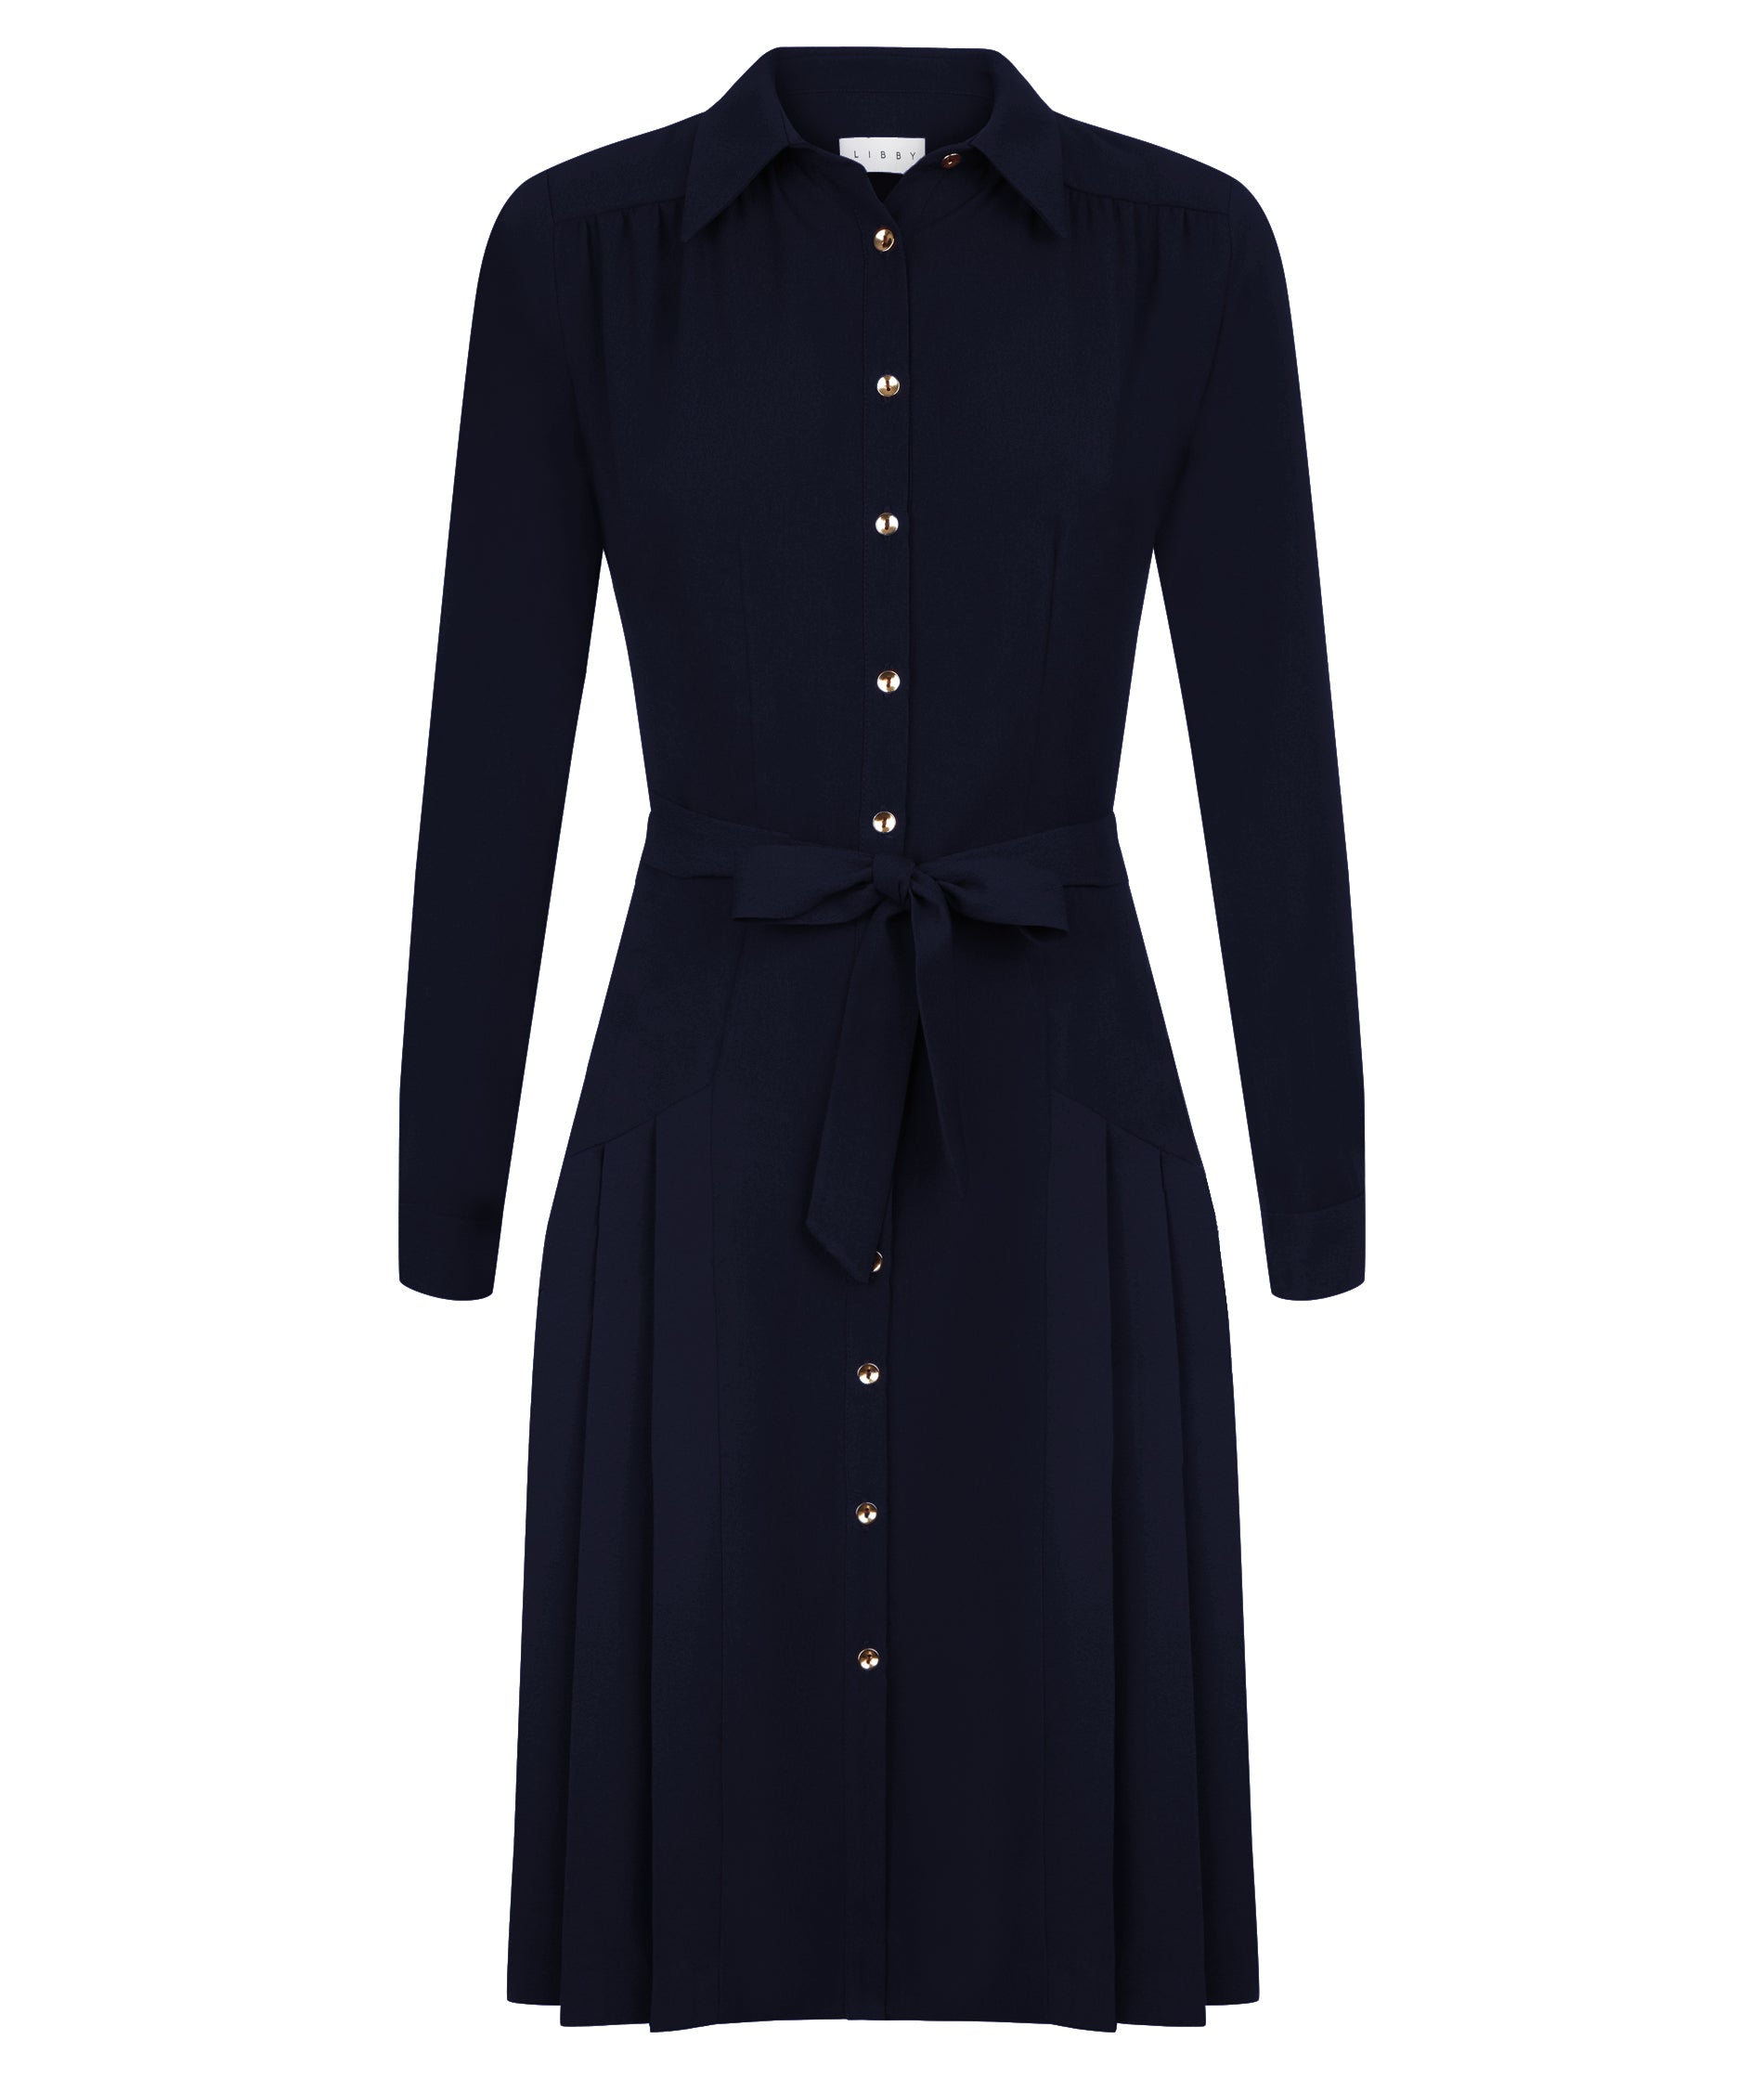 Thames Navy Shirt Dress